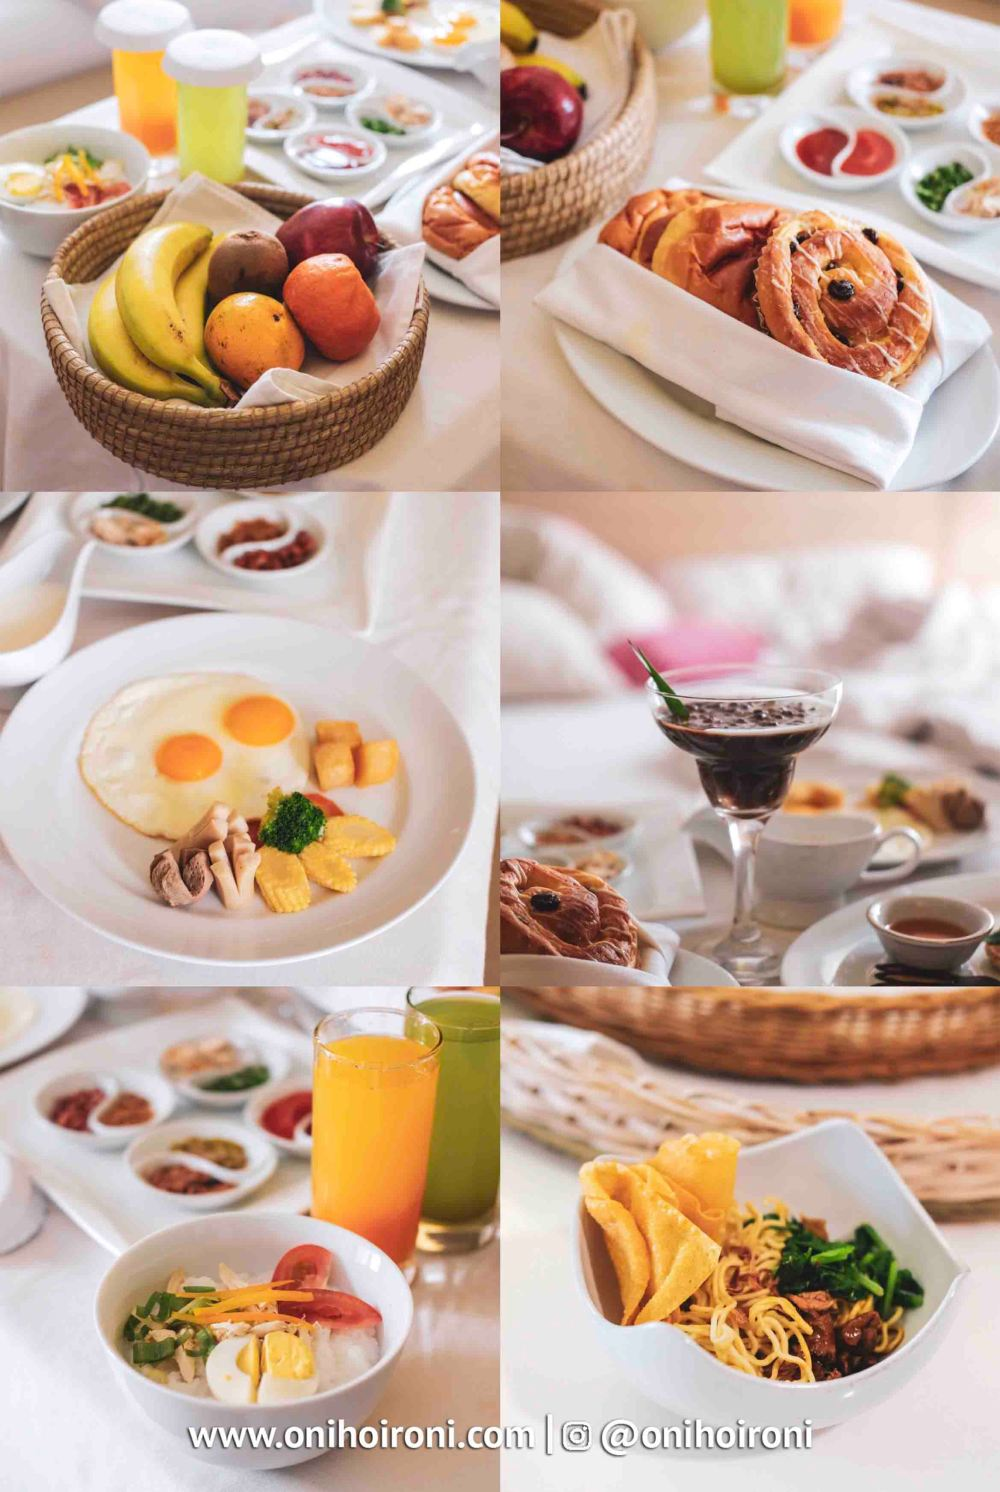 3 Breakfast in bed Fave Hotel palembang Oni Hoironi